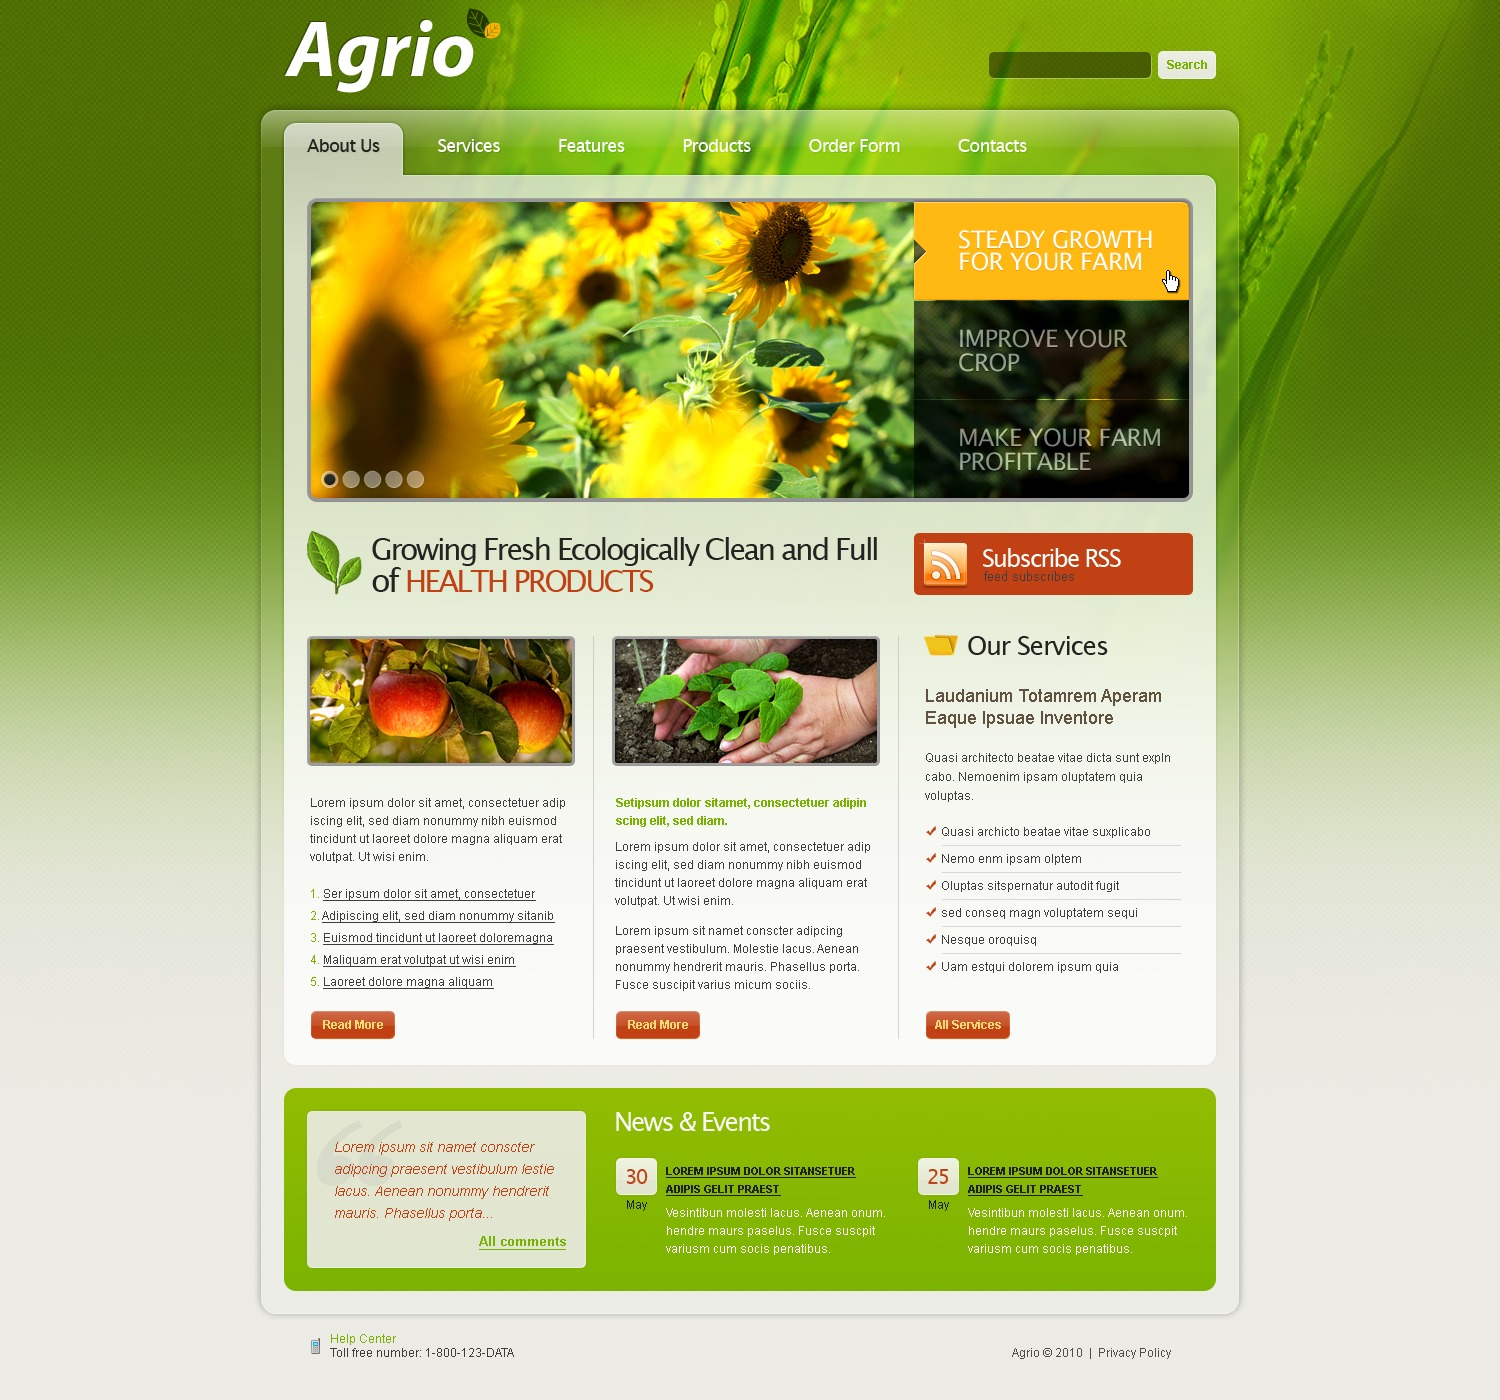 The Agriculture Company PSD Design 54313, one of the best PSD templates of its kind (agriculture, flash 8, wide), also known as agriculture company PSD template, business PSD template, grain-crops PSD template, cereals PSD template, field PSD template, combine PSD template, harvest PSD template, farming PSD template, plants PSD template, services PSD template, products solutions PSD template, market PSD template, delivery PSD template, resource PSD template, grassland PSD template, equipment PSD template, nitrates PSD template, fertilizer PSD template, clients PSD template, partners PSD template, innovations PSD template, support PSD template, information dealer PSD template, stocks PSD template, tea and related with agriculture company, business, grain-crops, cereals, field, combine, harvest, farming, plants, services, products solutions, market, delivery, resource, grassland, equipment, nitrates, fertilizer, clients, partners, innovations, support, information dealer, stocks, tea, etc.